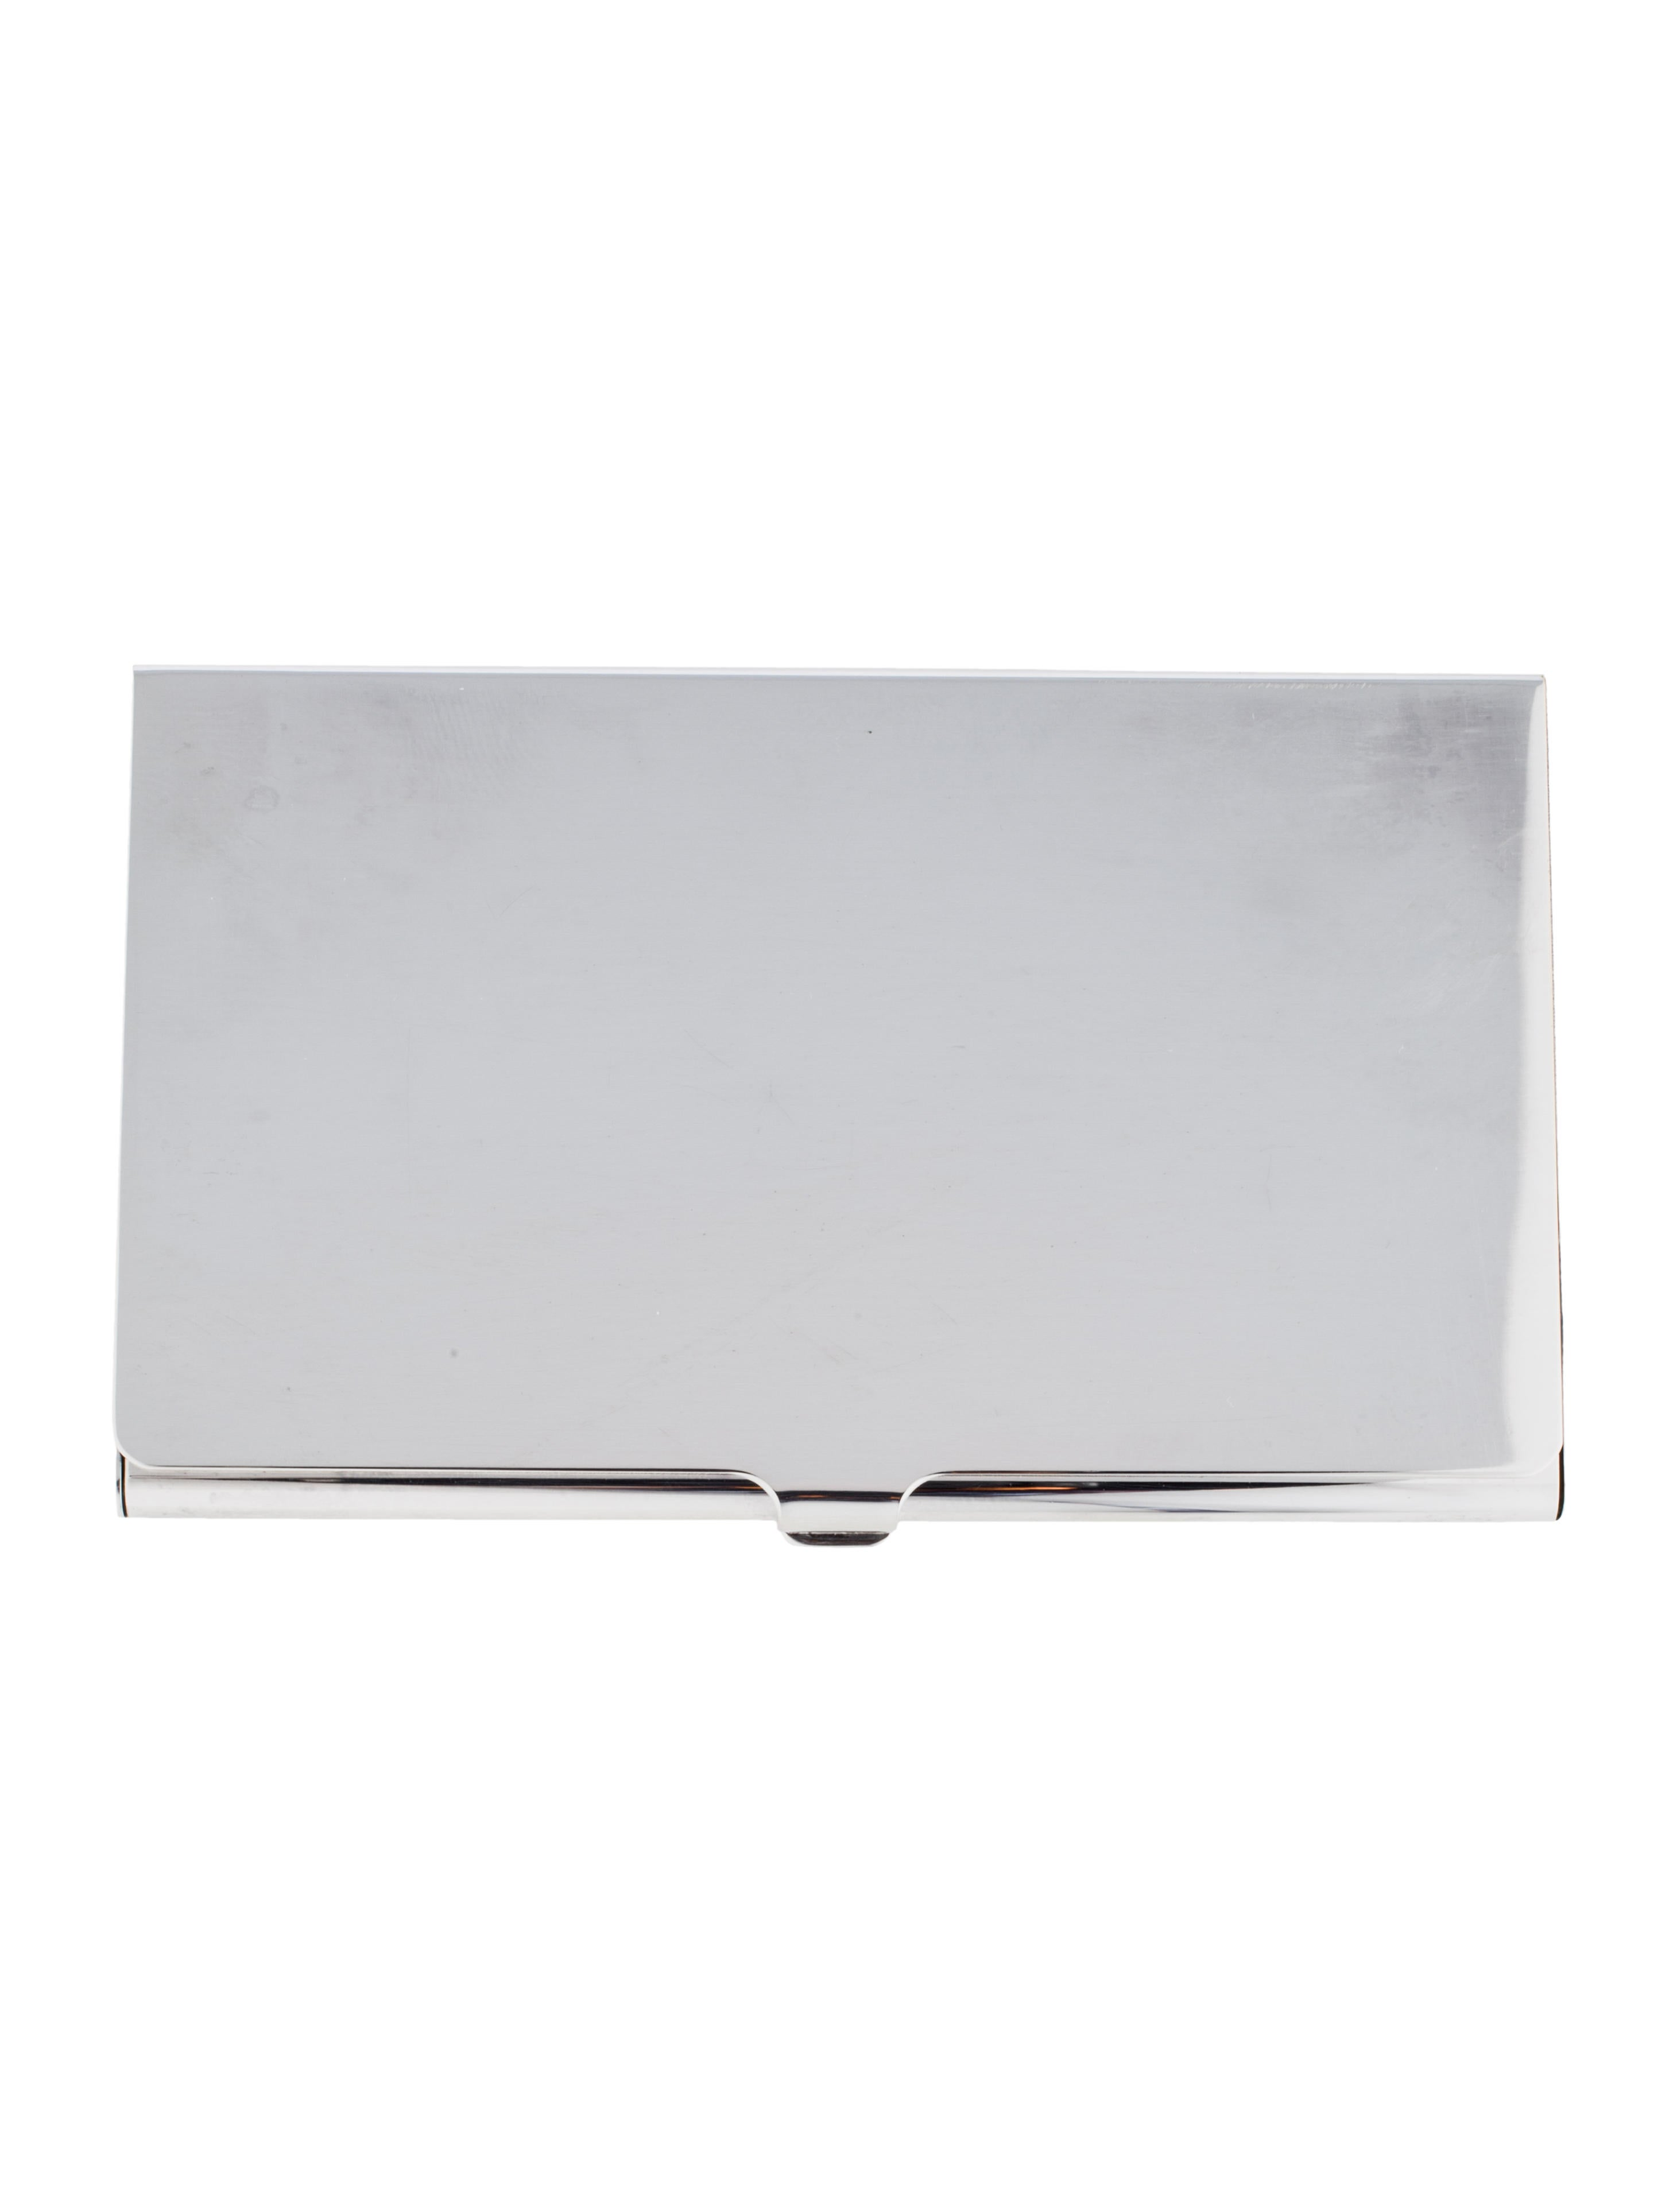 Tiffany co silver plate business card holder decor and silver plate business card holder reheart Choice Image